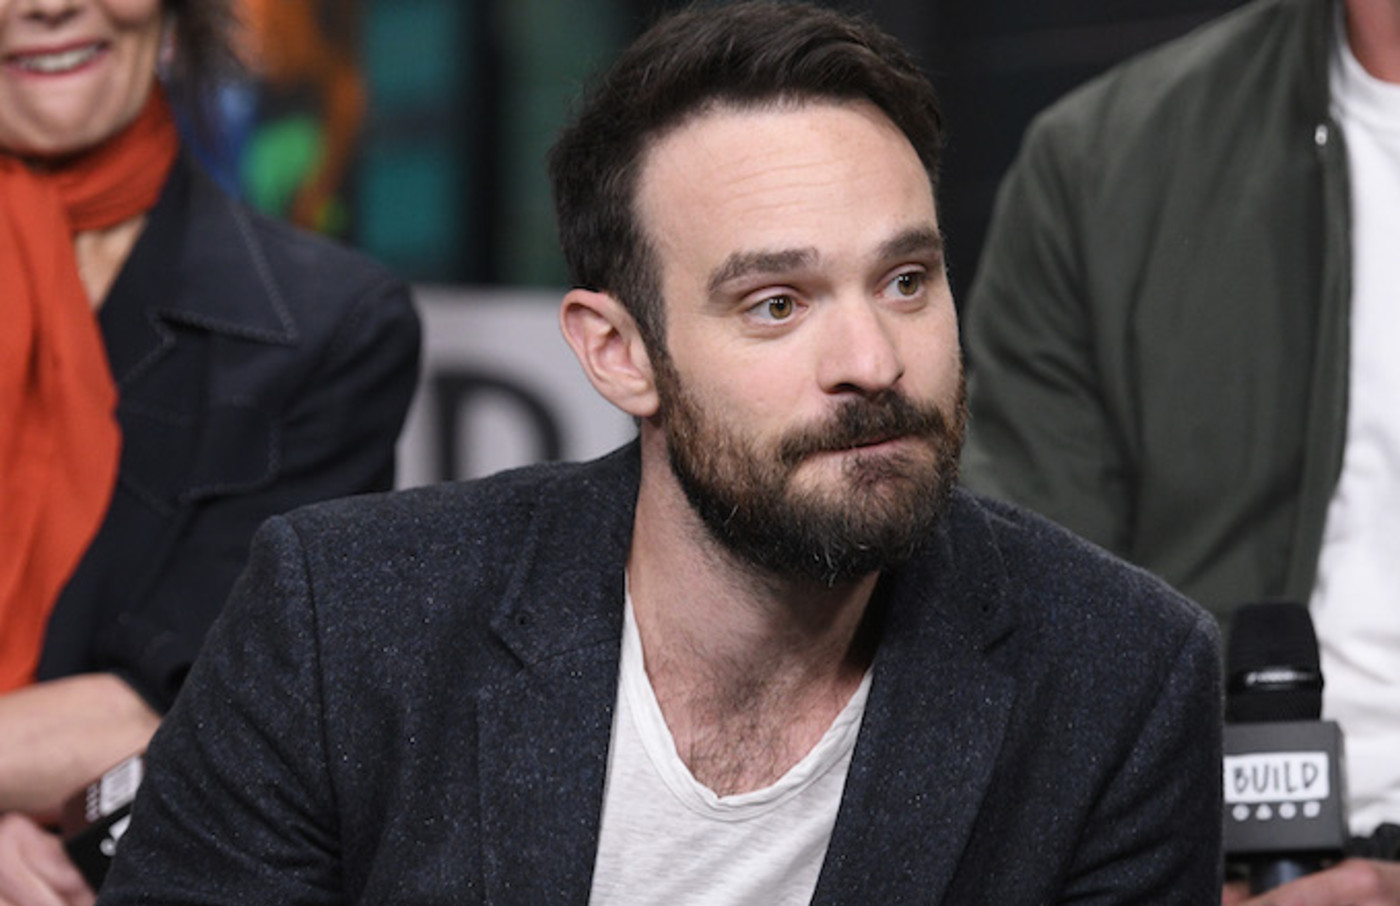 Charlie Cox visits Build Series to discuss the Netflix series 'Daredevil.'